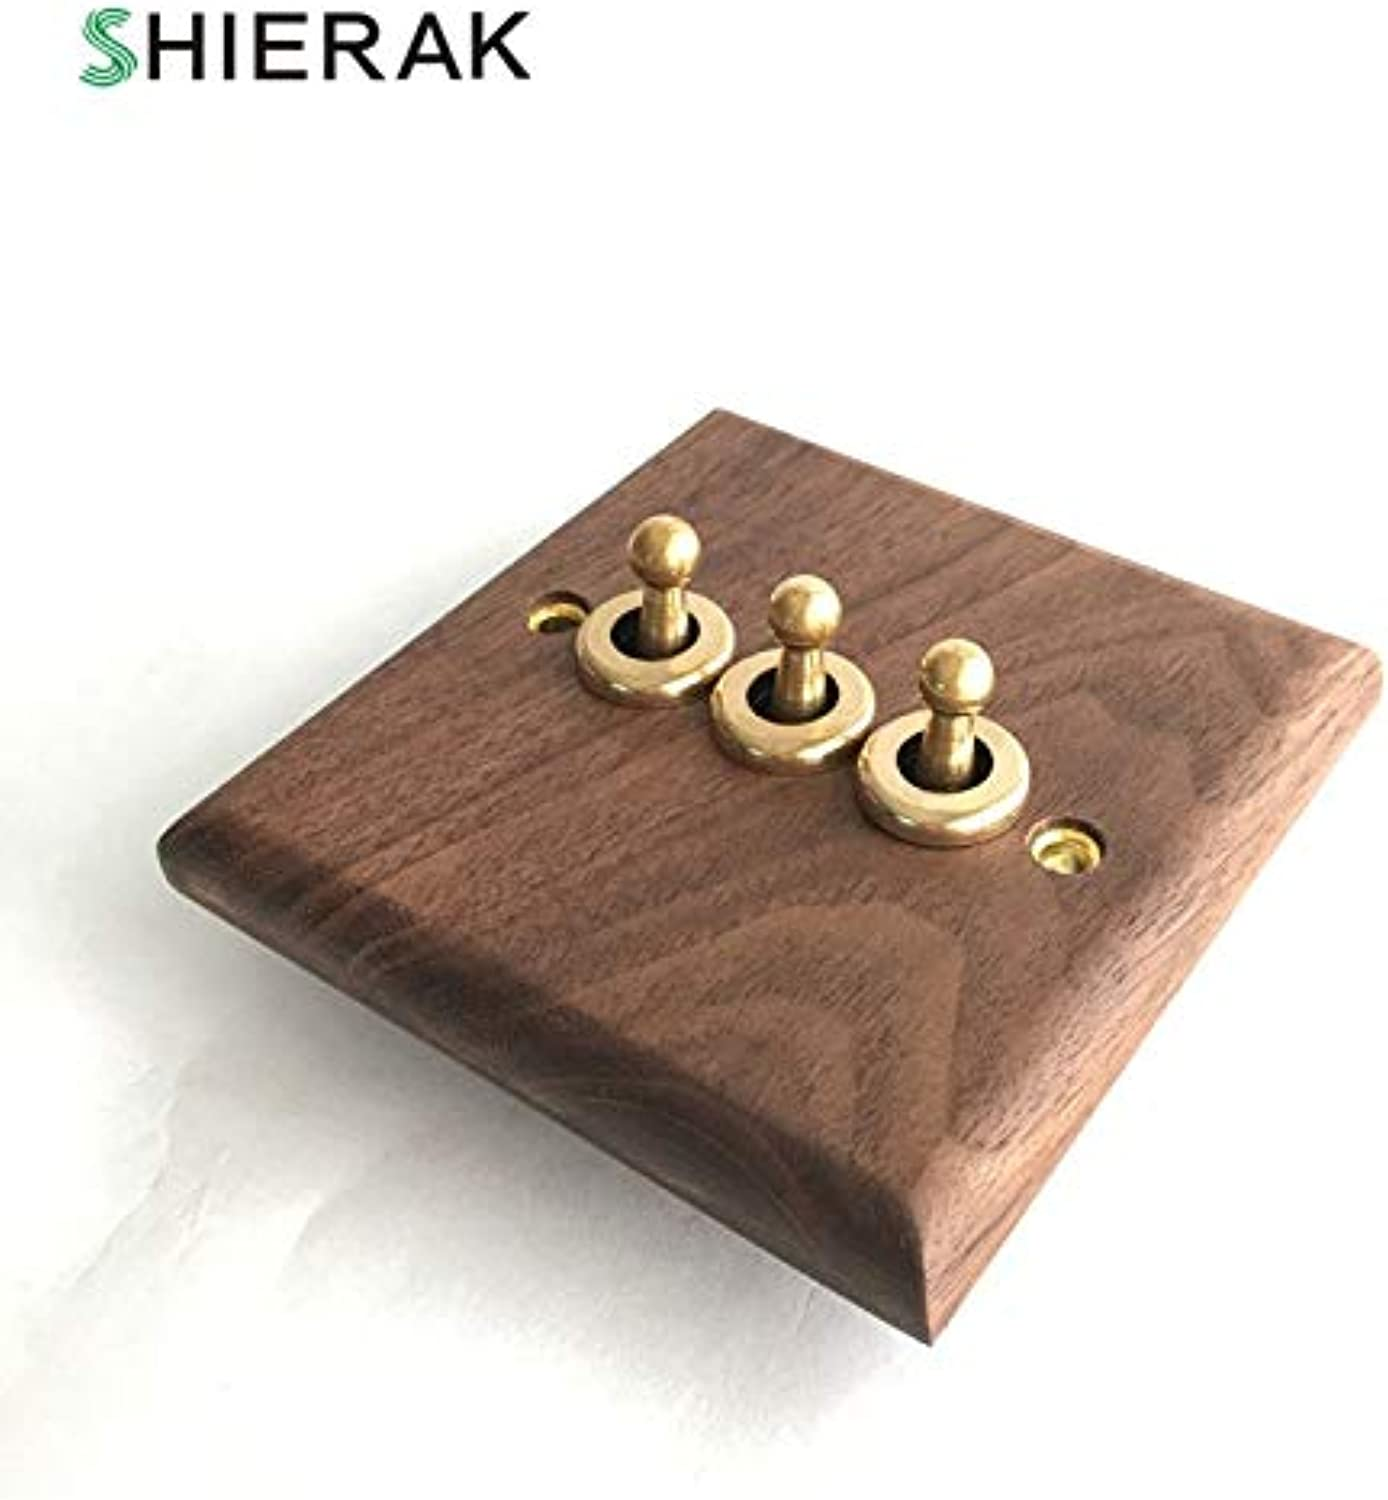 SHIERAK Classical Walnut Wood Panel Light Switch High Quality 3 Gang Wall Switch Lever Toggle Switch(Number of Gangs  3-Gang)